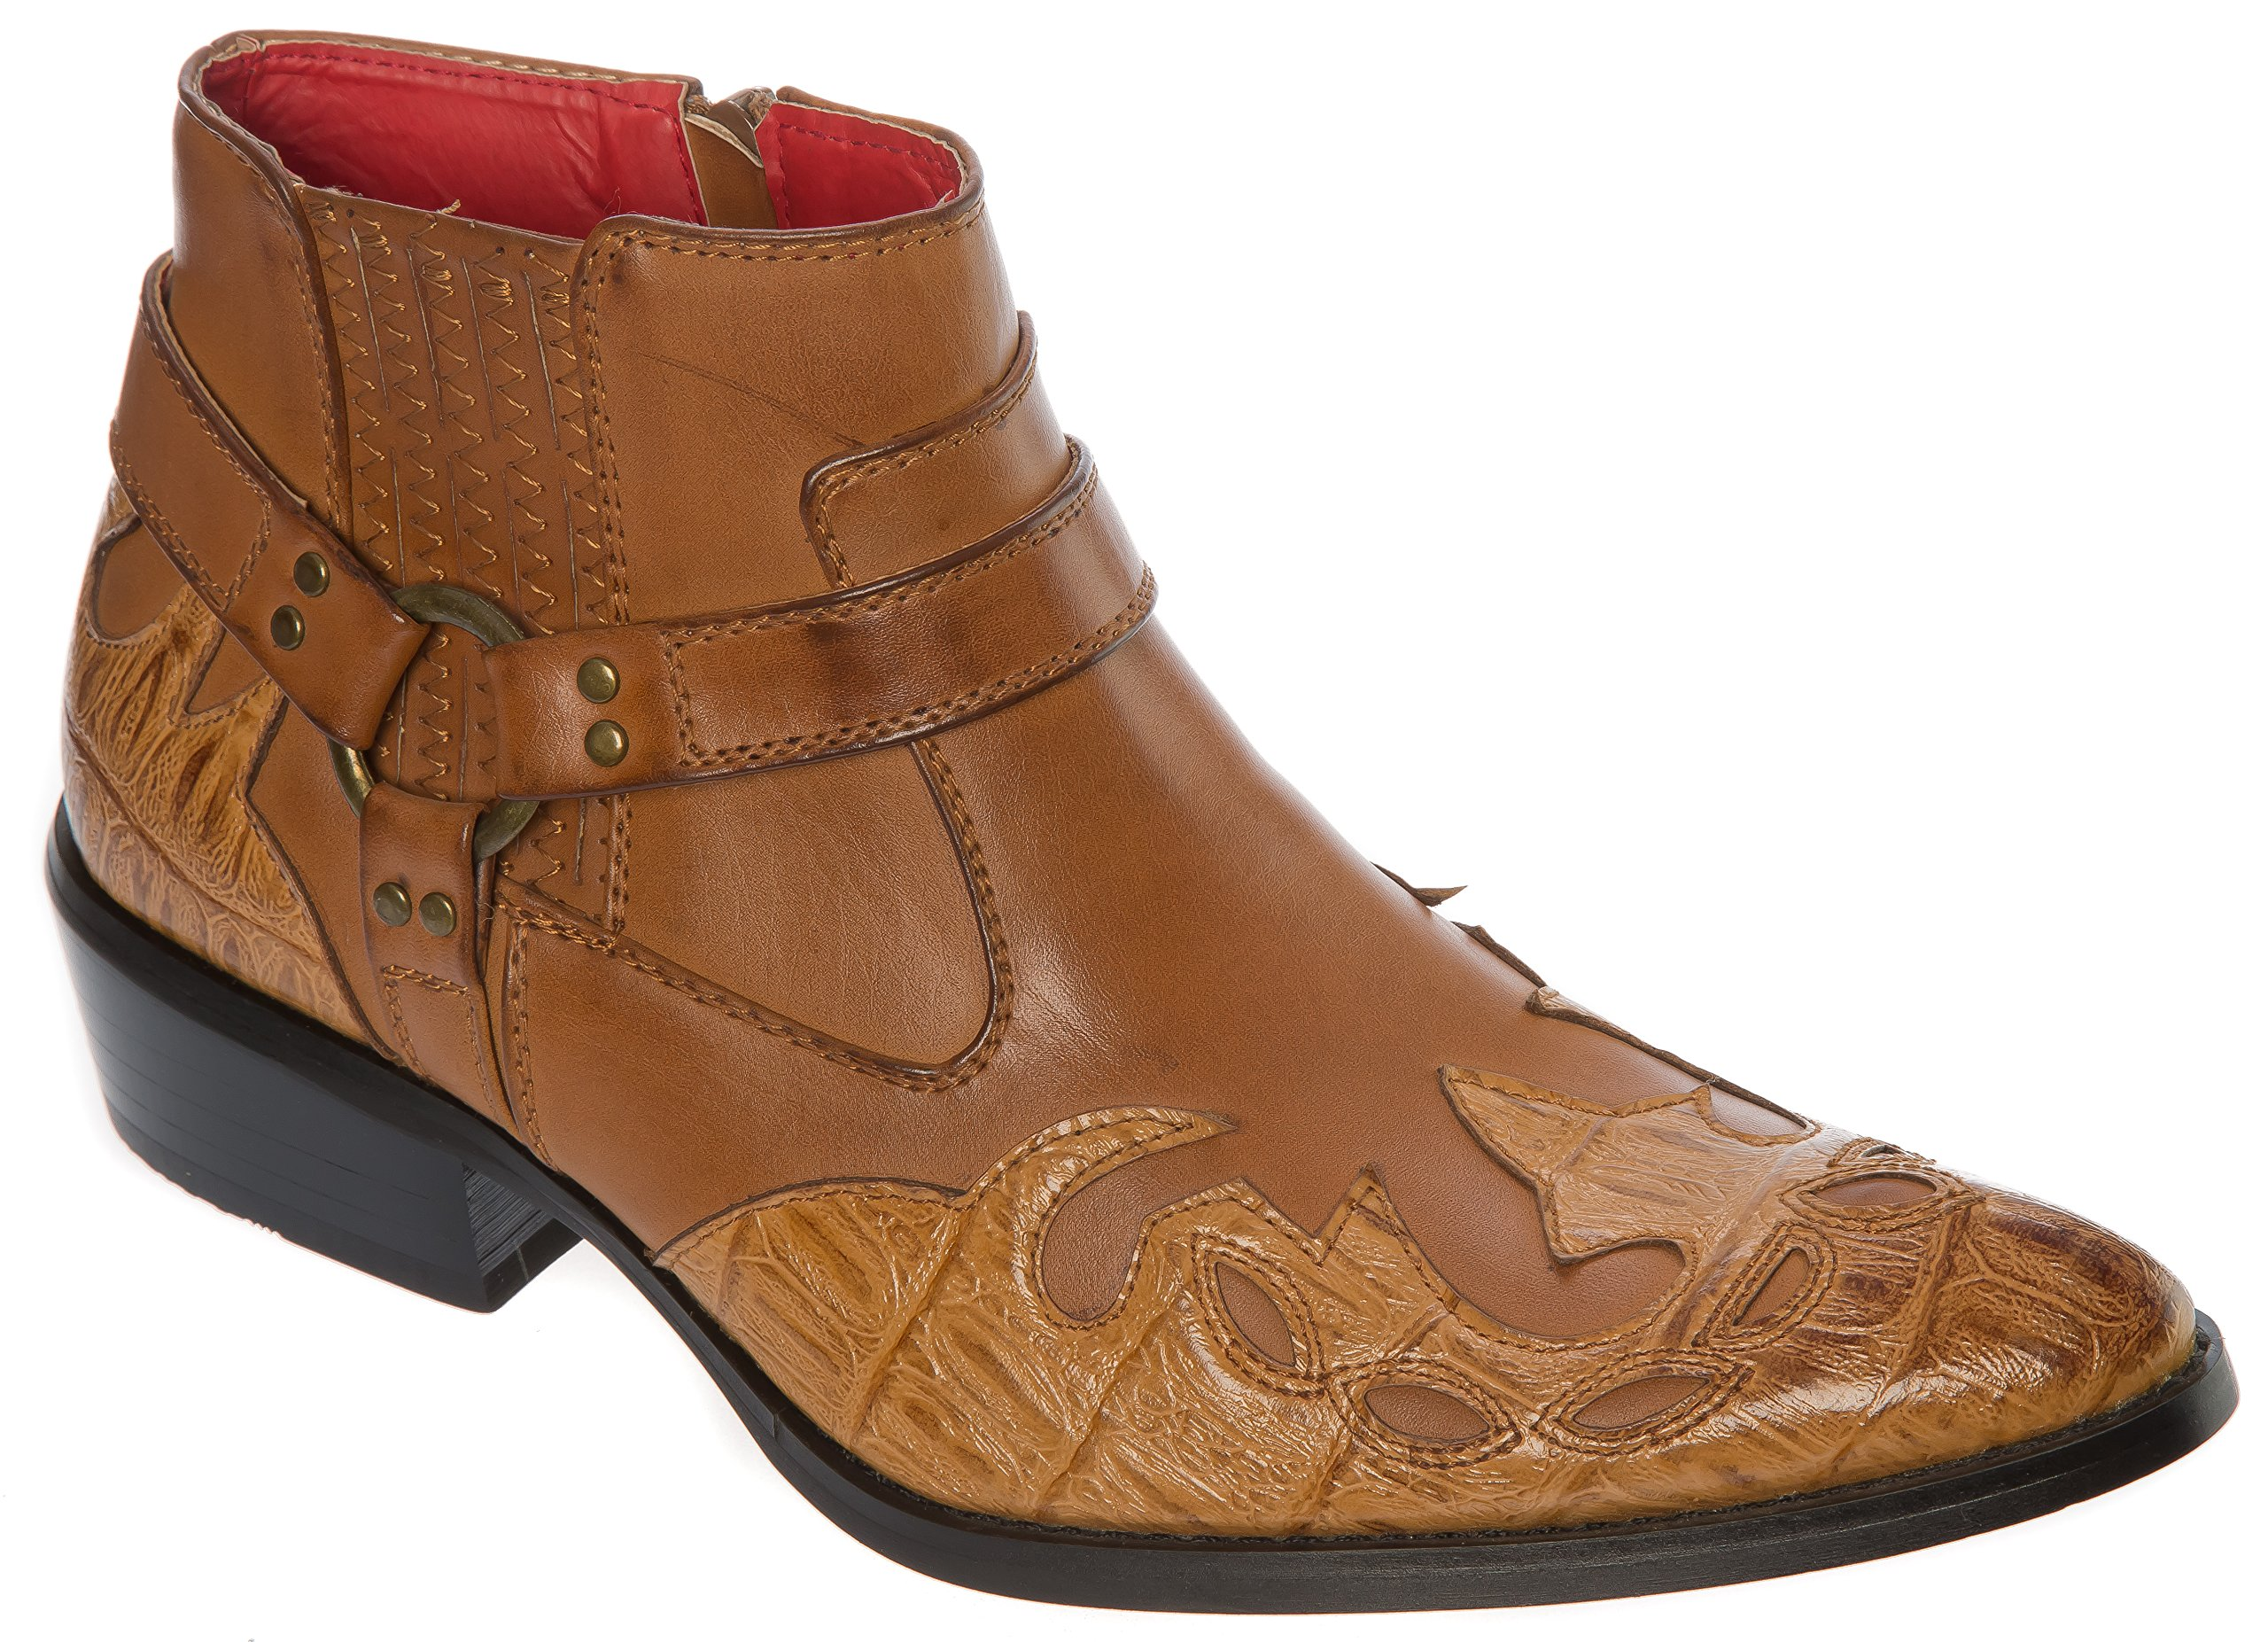 ALFA Size 10.5 Mens Tan Western-Boots Slip On Side Zipper Wing Tip Cowboy Boots